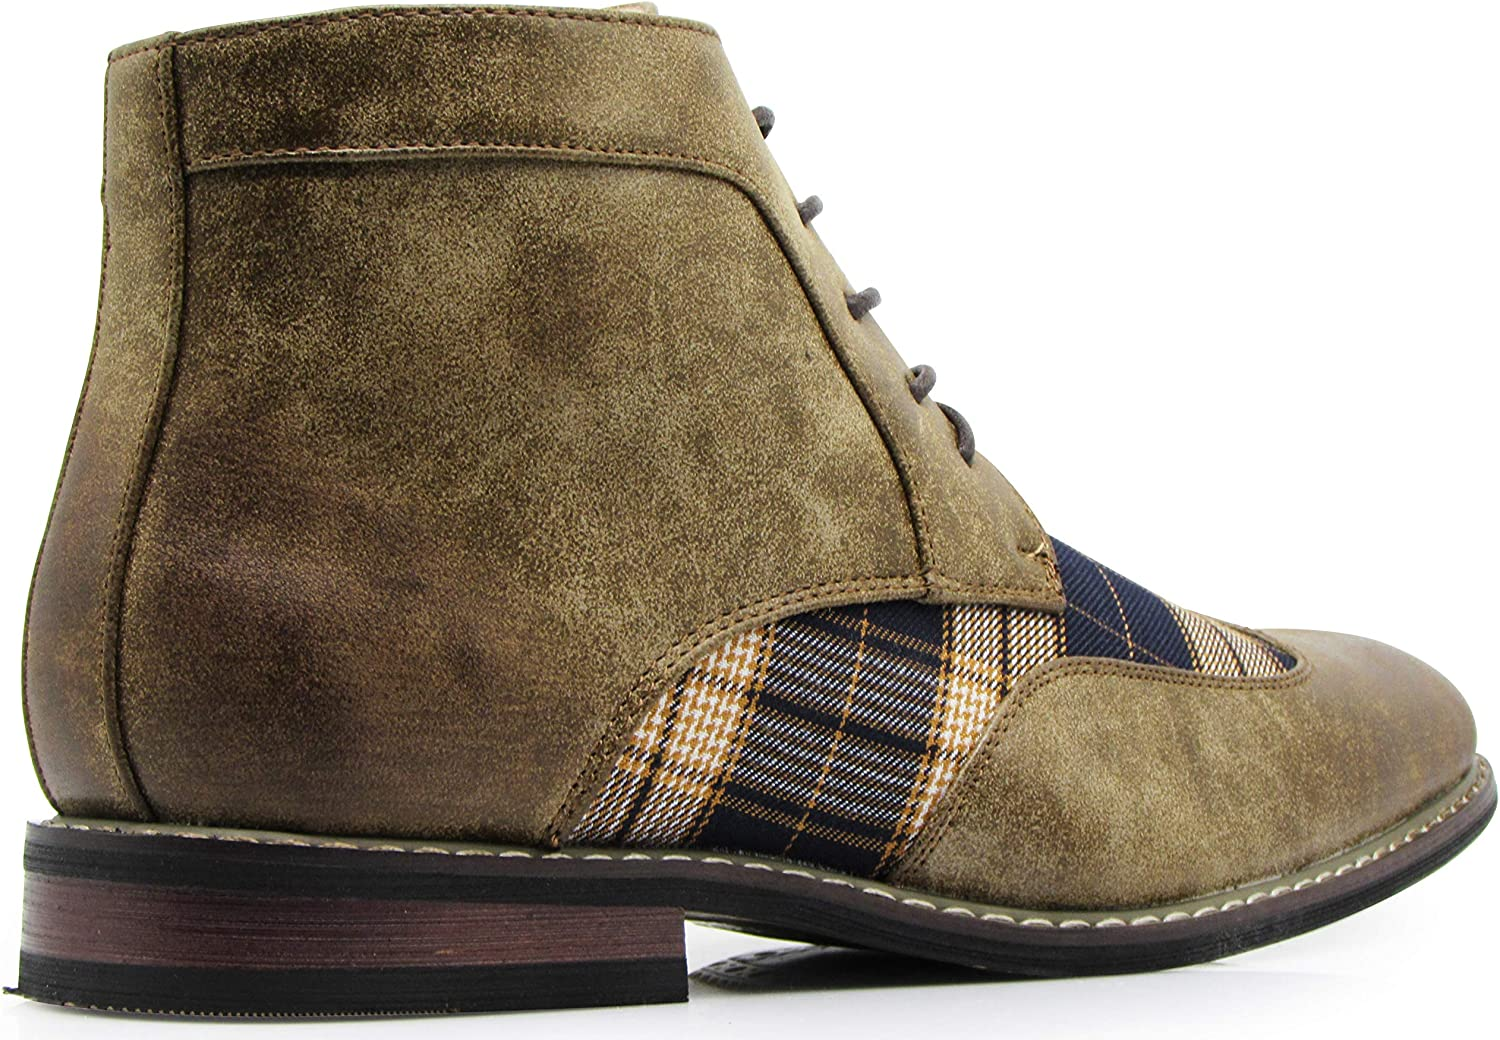 Titan04 Men Spectator Tweed Plaid Two Tone Chukka Ankle Wingtips Oxfords Dress Boots Perforated Lace Up Dress Shoes